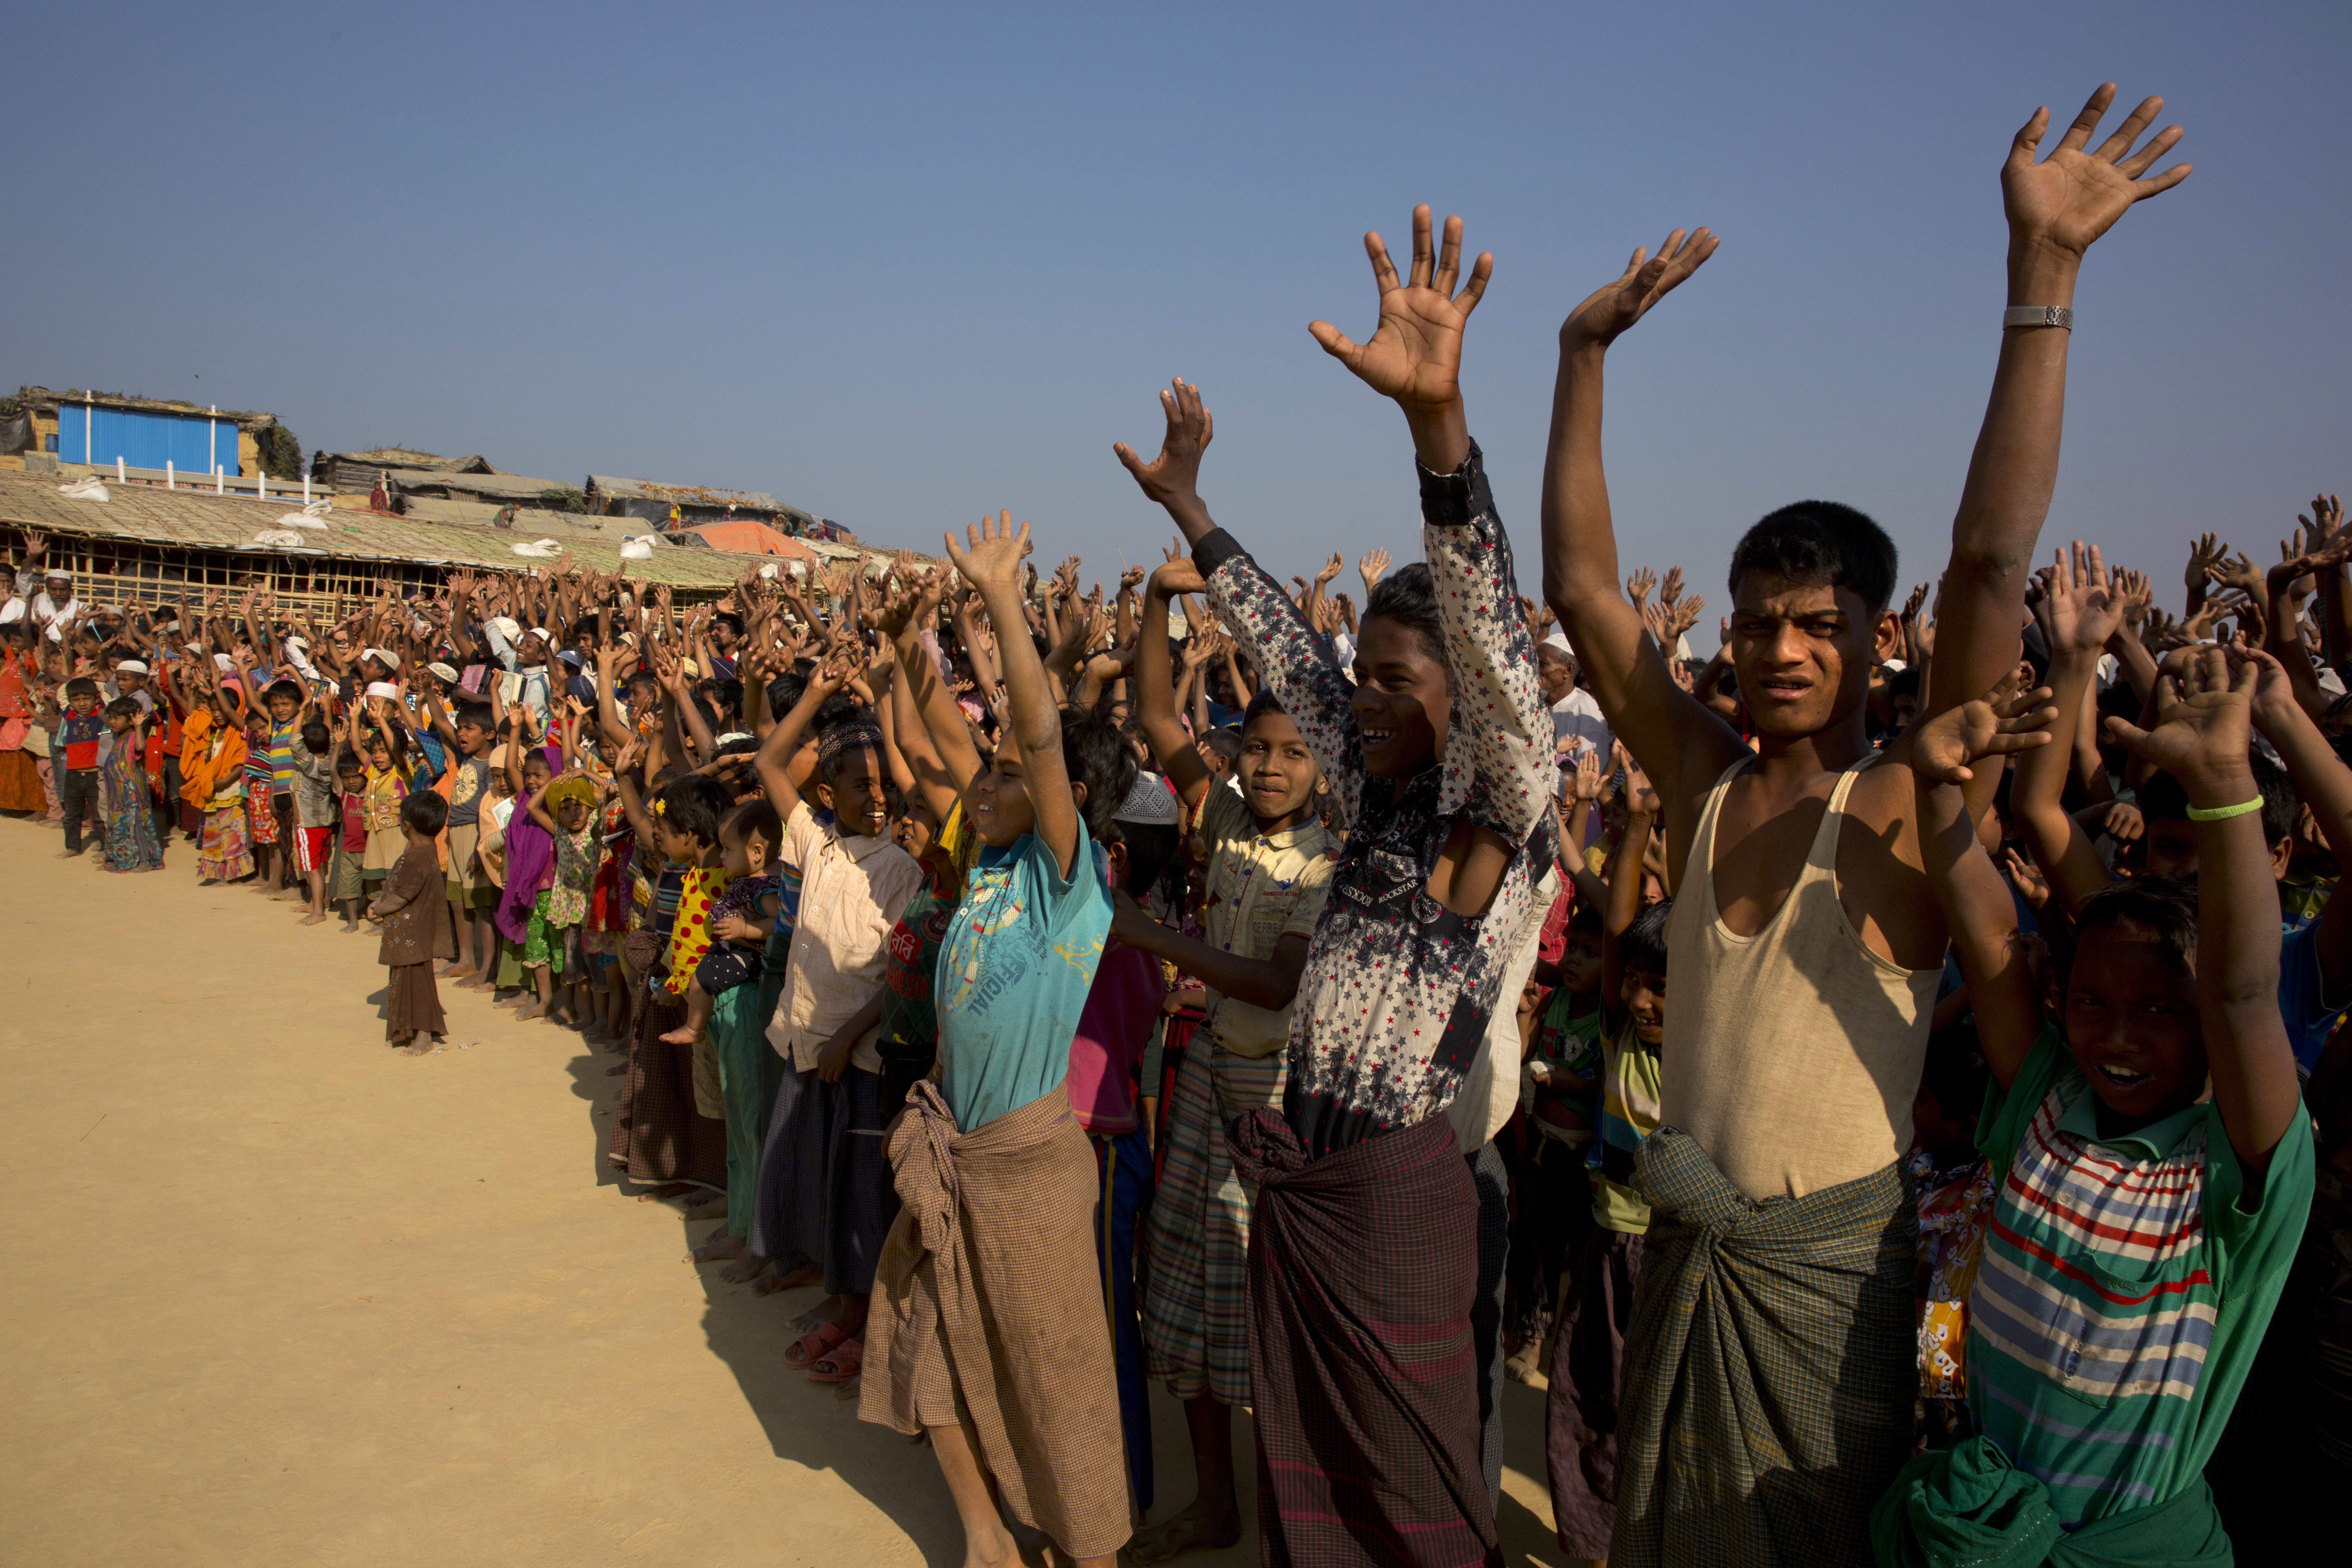 U.S. court orders Facebook to release records of anti-Rohingya accounts to Myanmar probe